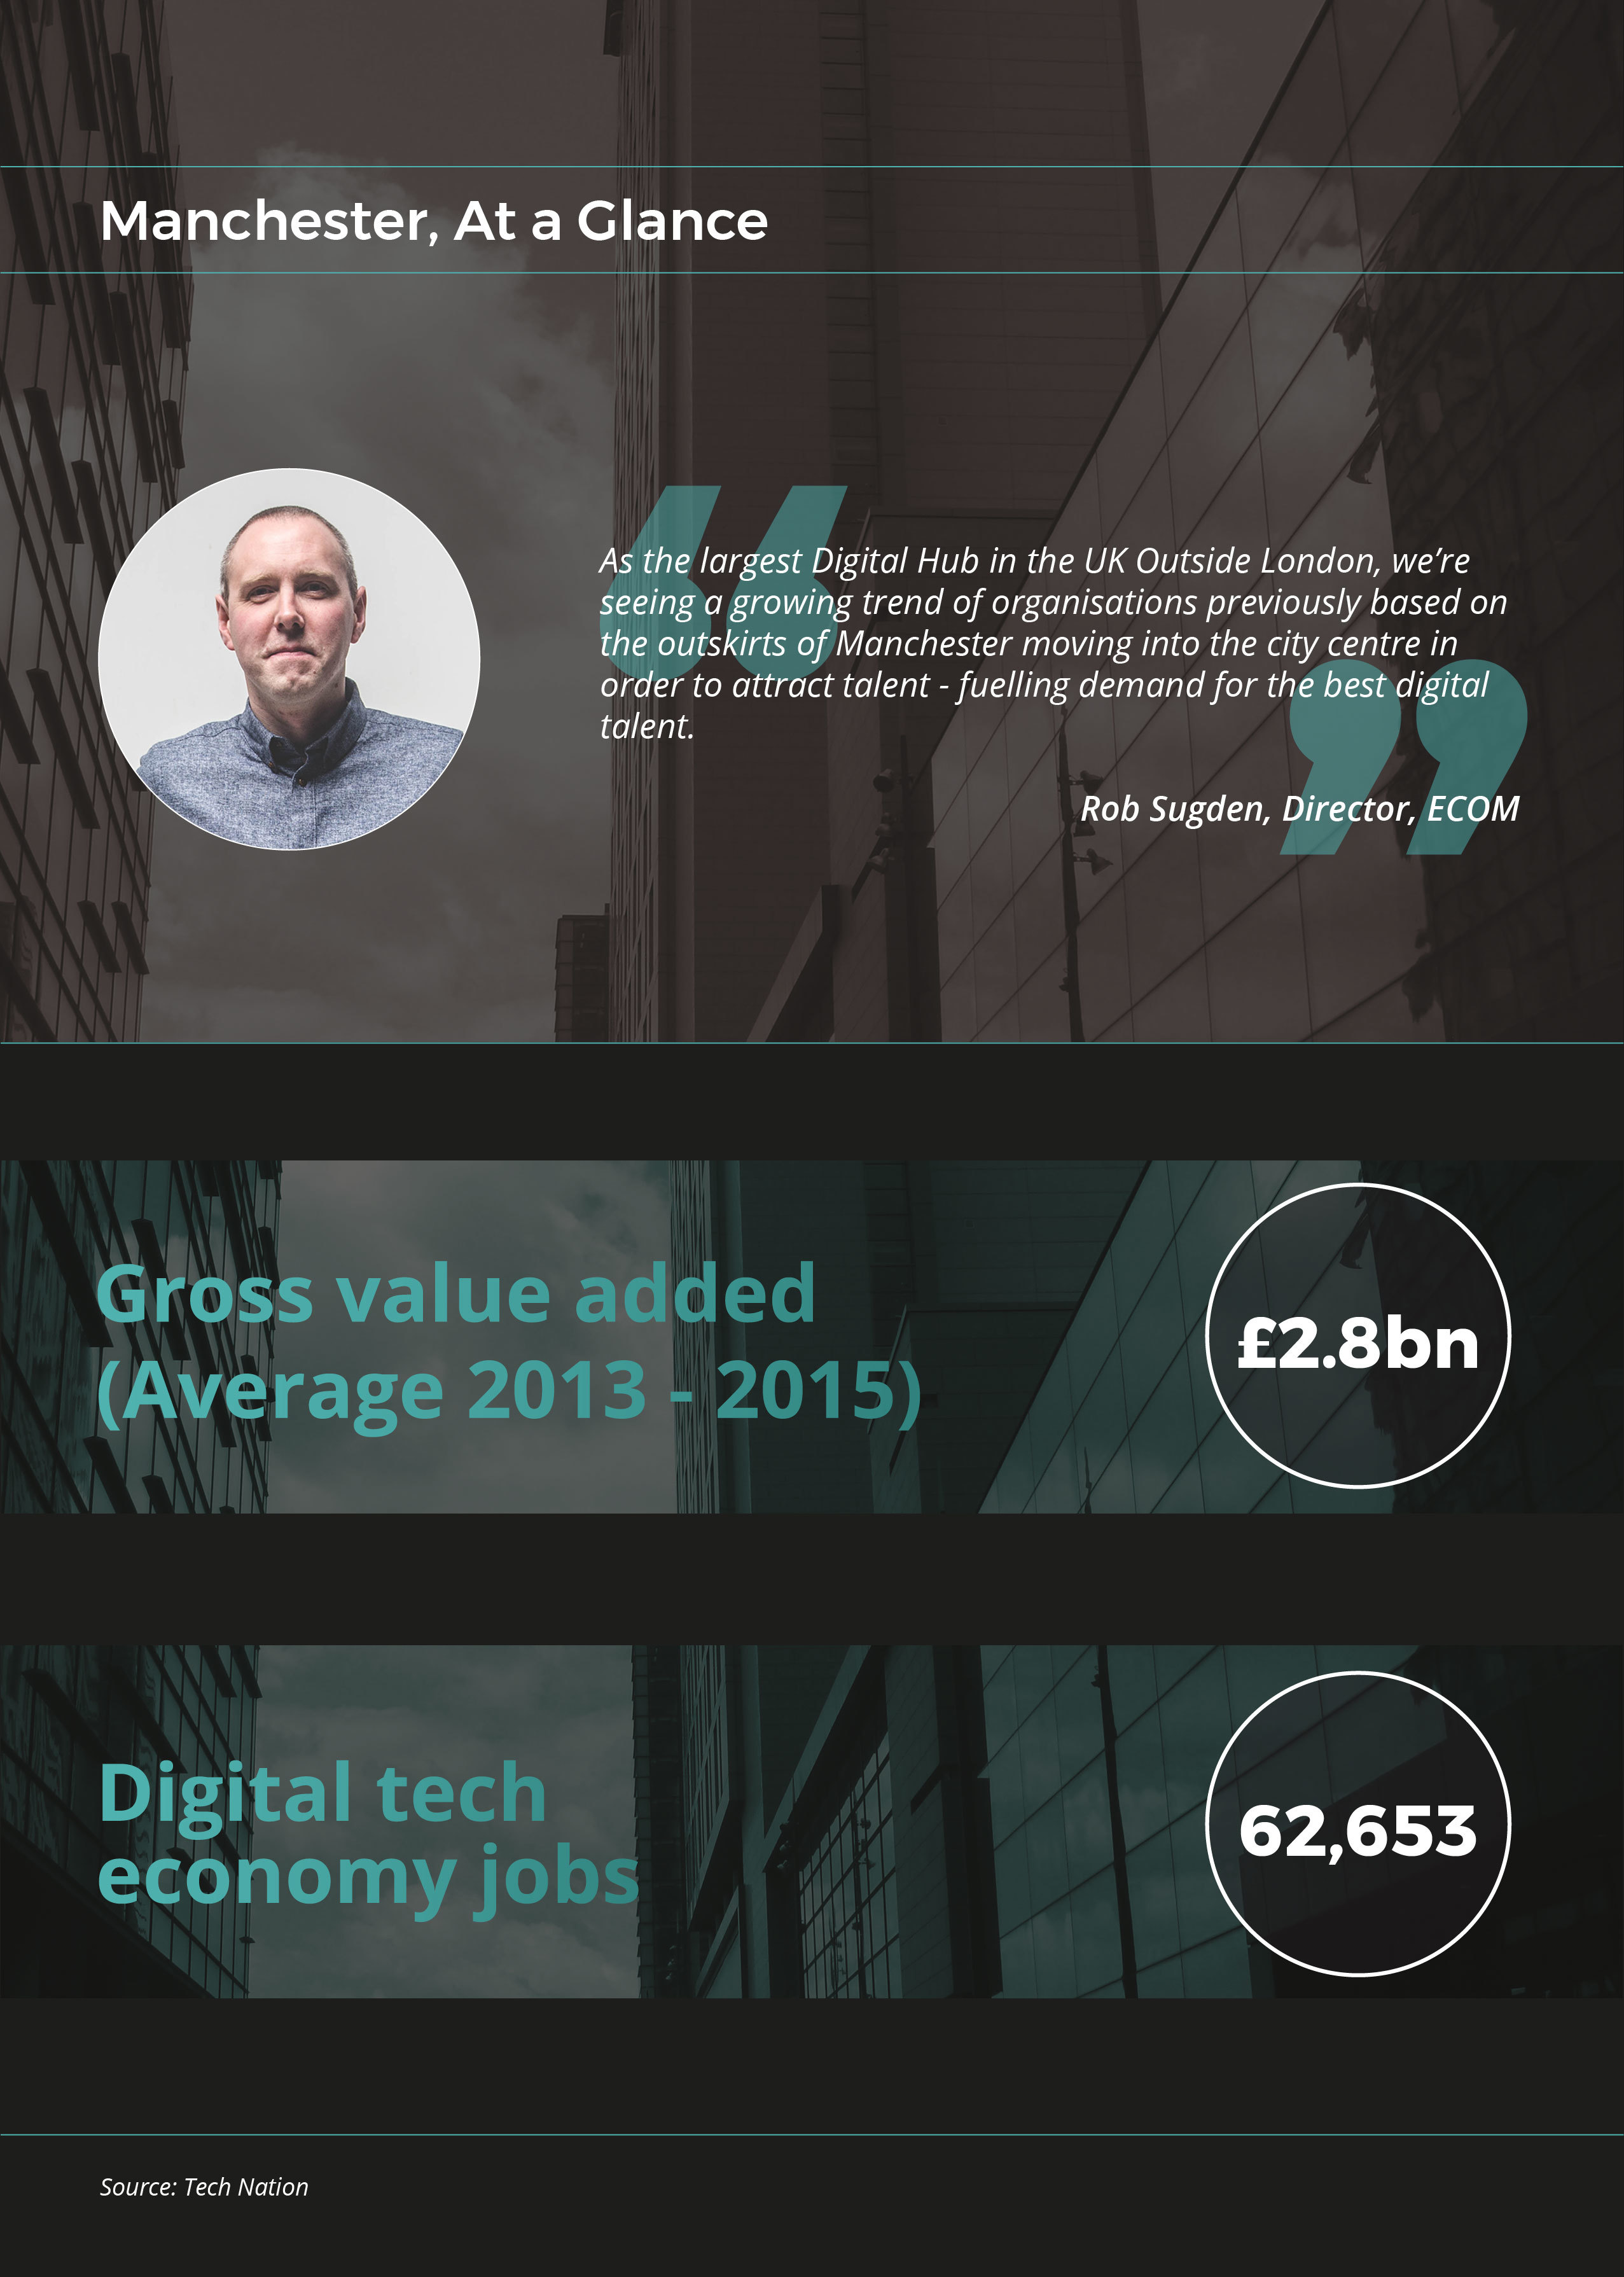 Manchester Digital Economy - At a Glance